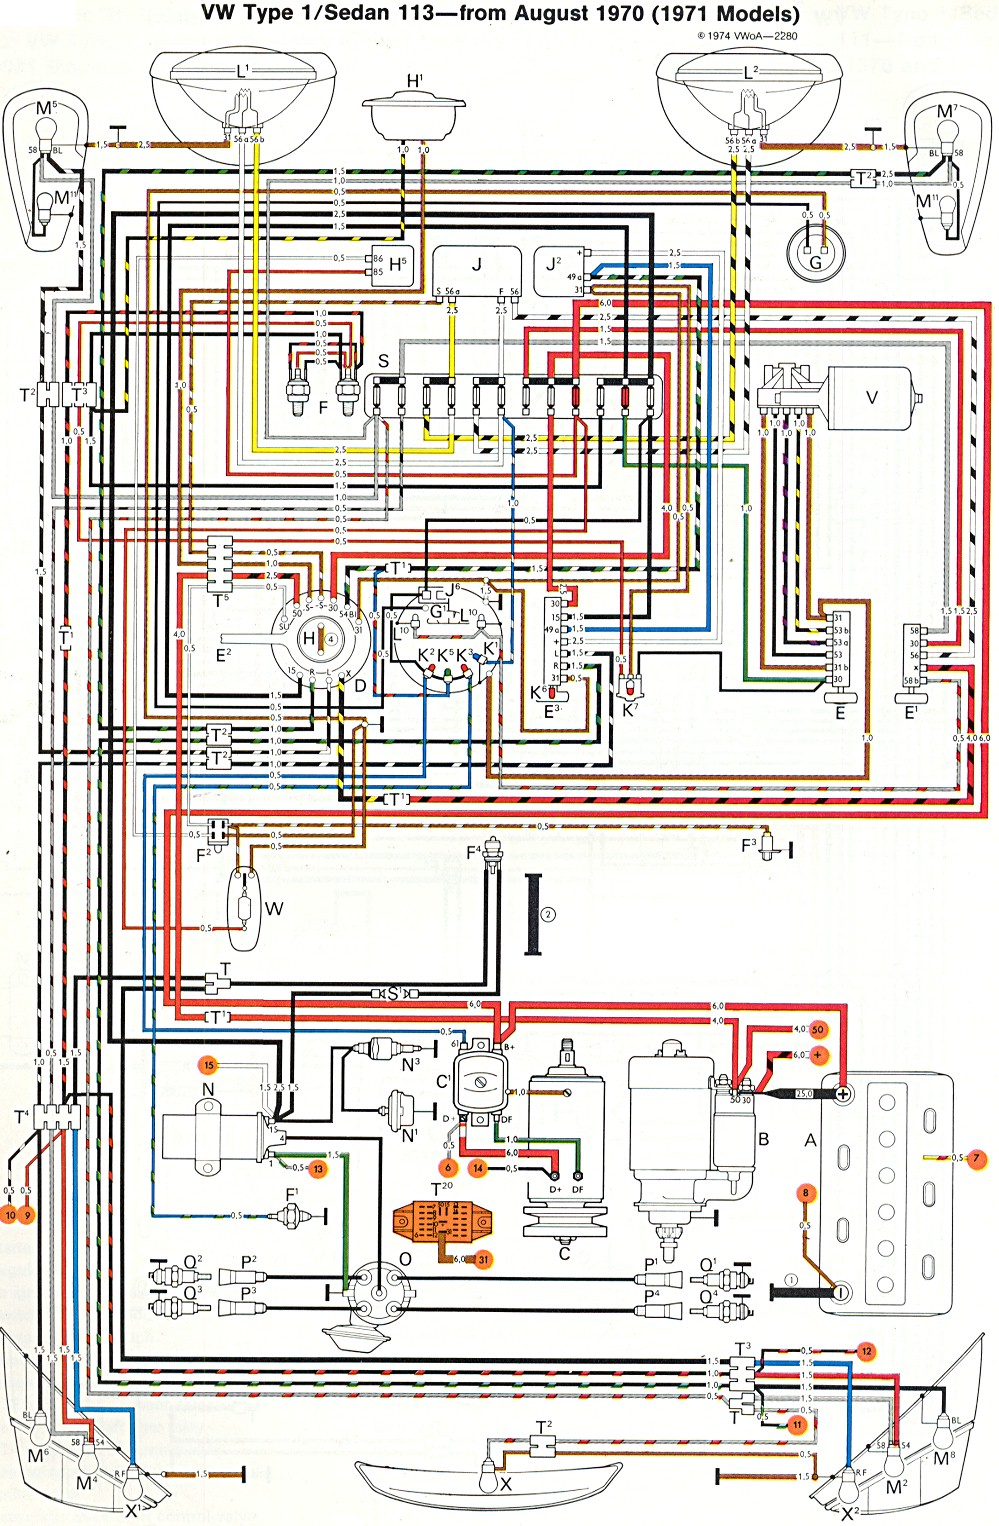 Vw Bug Electrical Schematic Wiring Diagram 1969 74 Search For Diagrams U2022 Rh Stephenpoon Co 1970